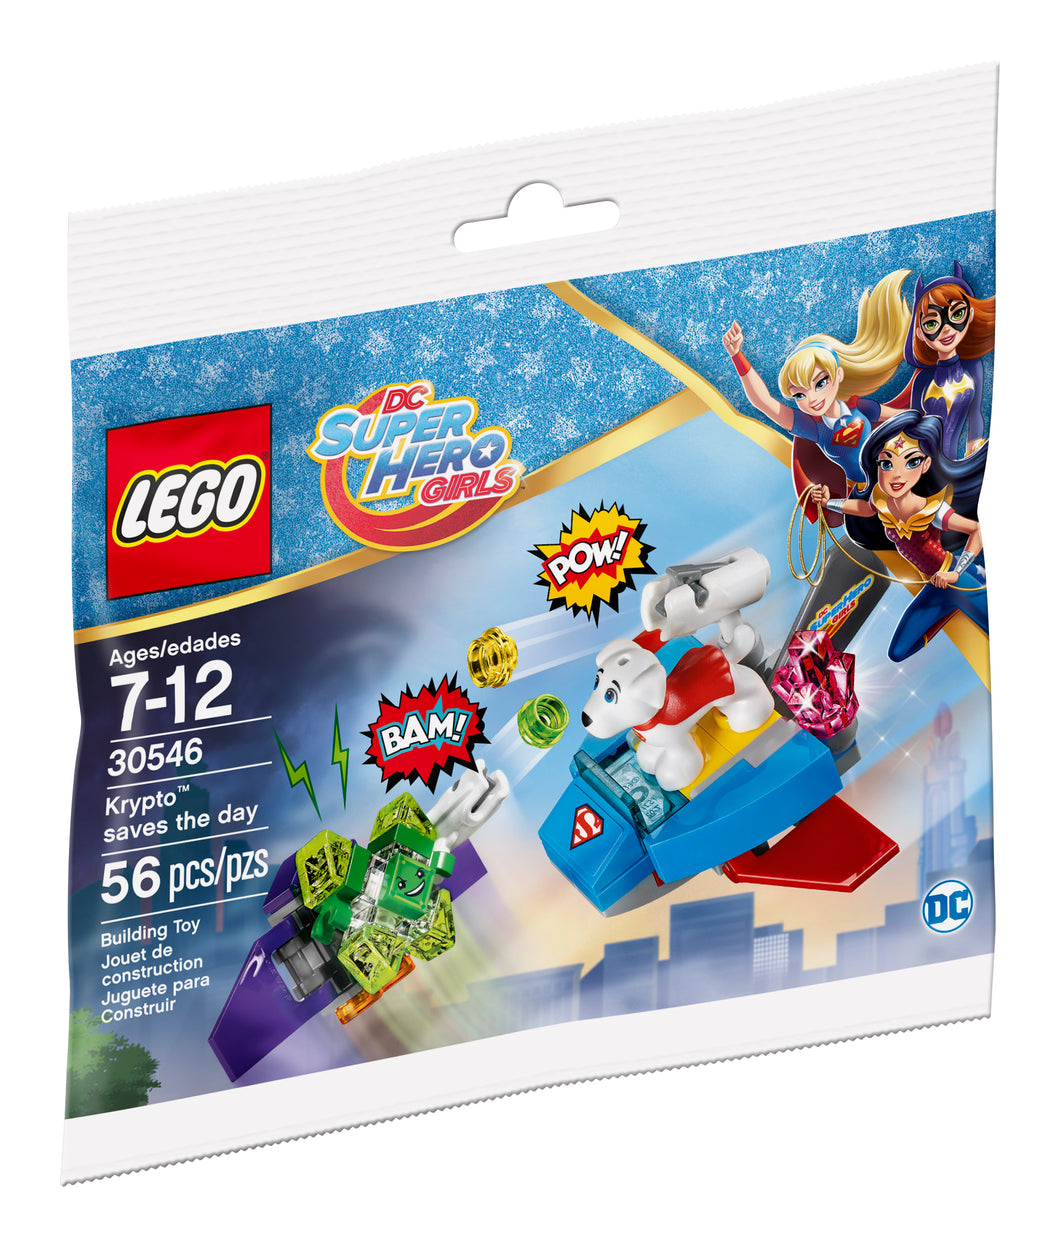 LEGO DC Super Hero Girls Krypto Saves the Day 30546